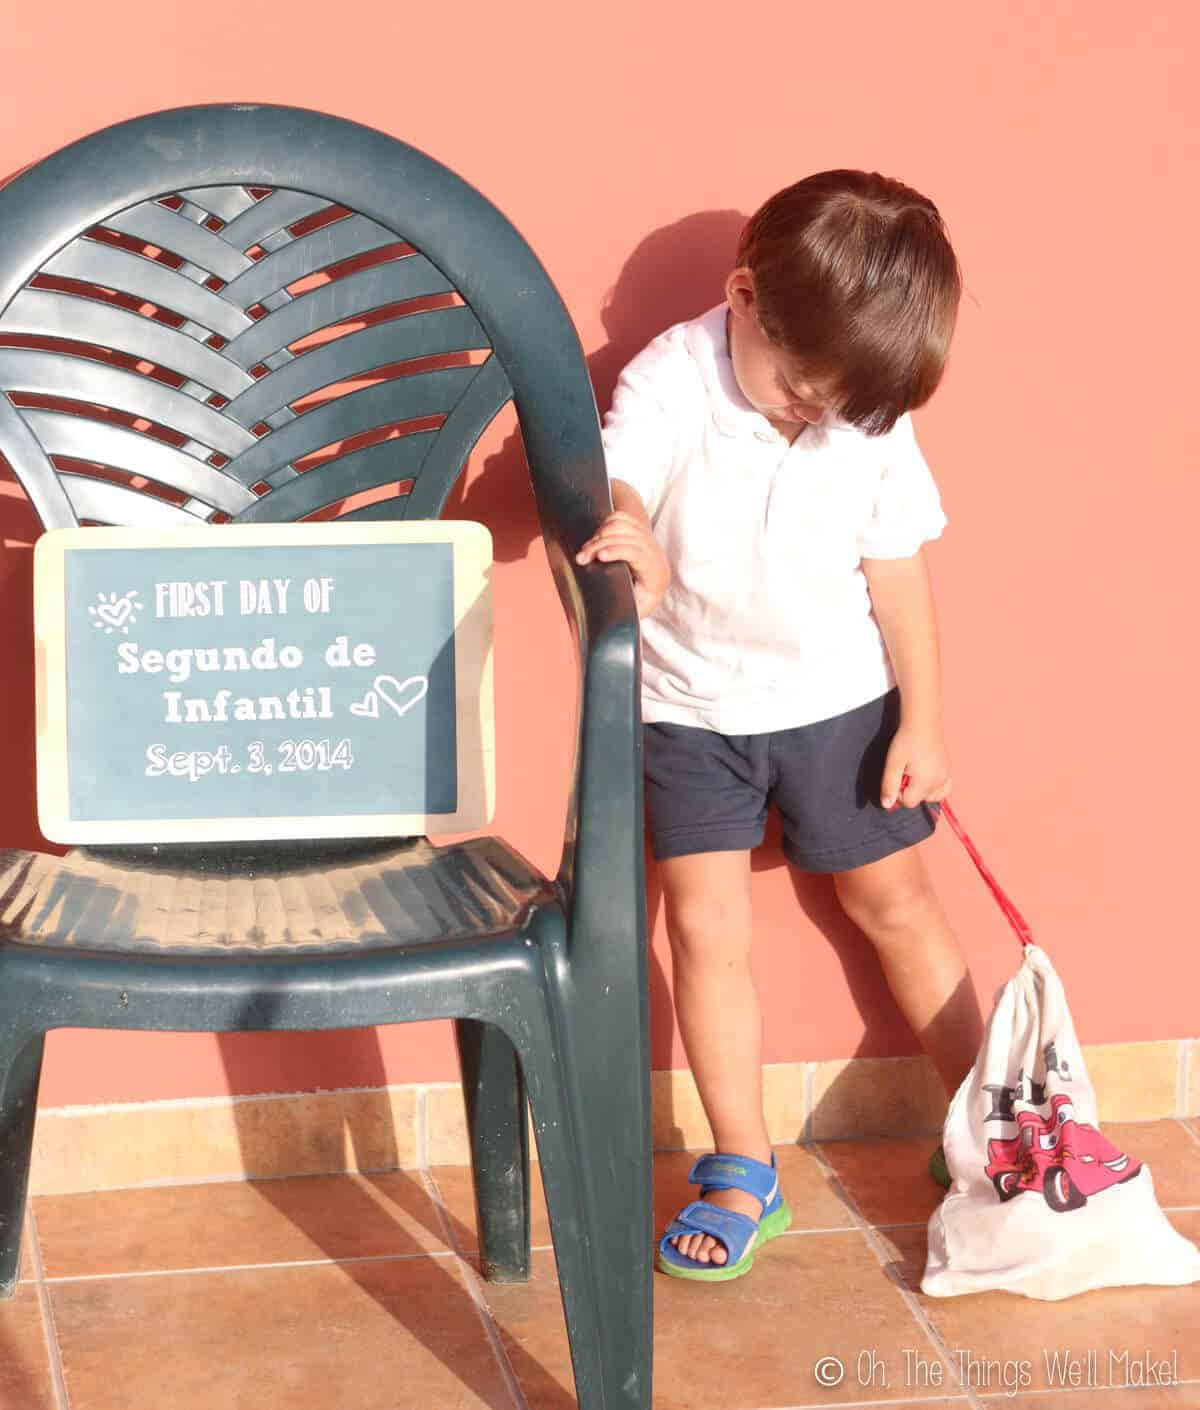 Upset young boy with his head down next to a sign made to memorialize the first day of school